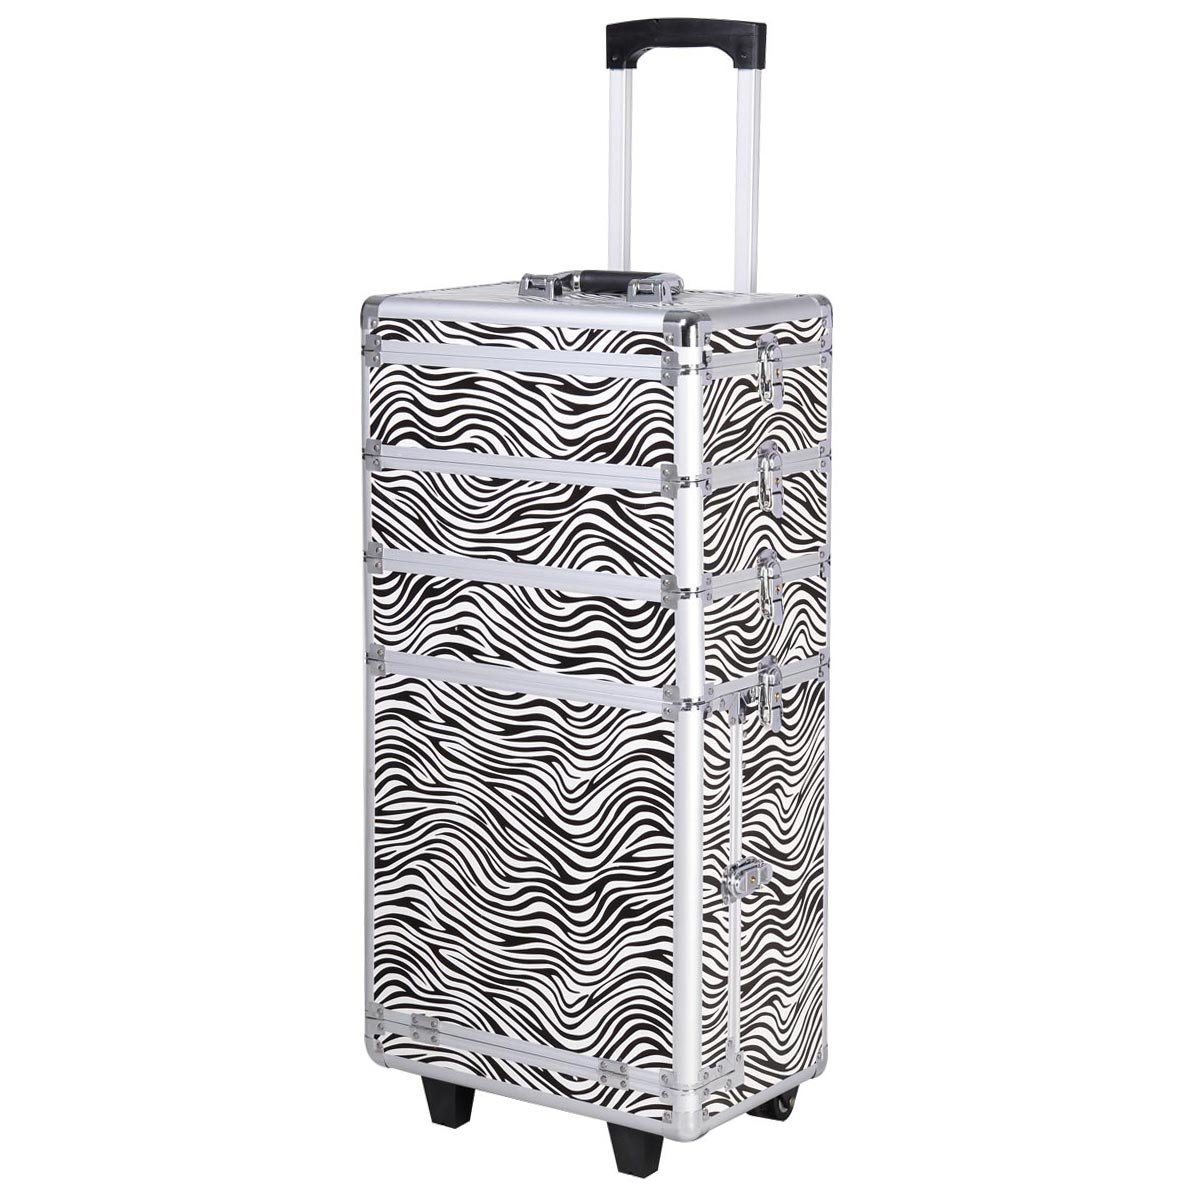 Amazoncom Giantex In Interchangeable Pro Aluminum Rolling - Aluminum trolley case pro rolling makeup cosmetic organizer